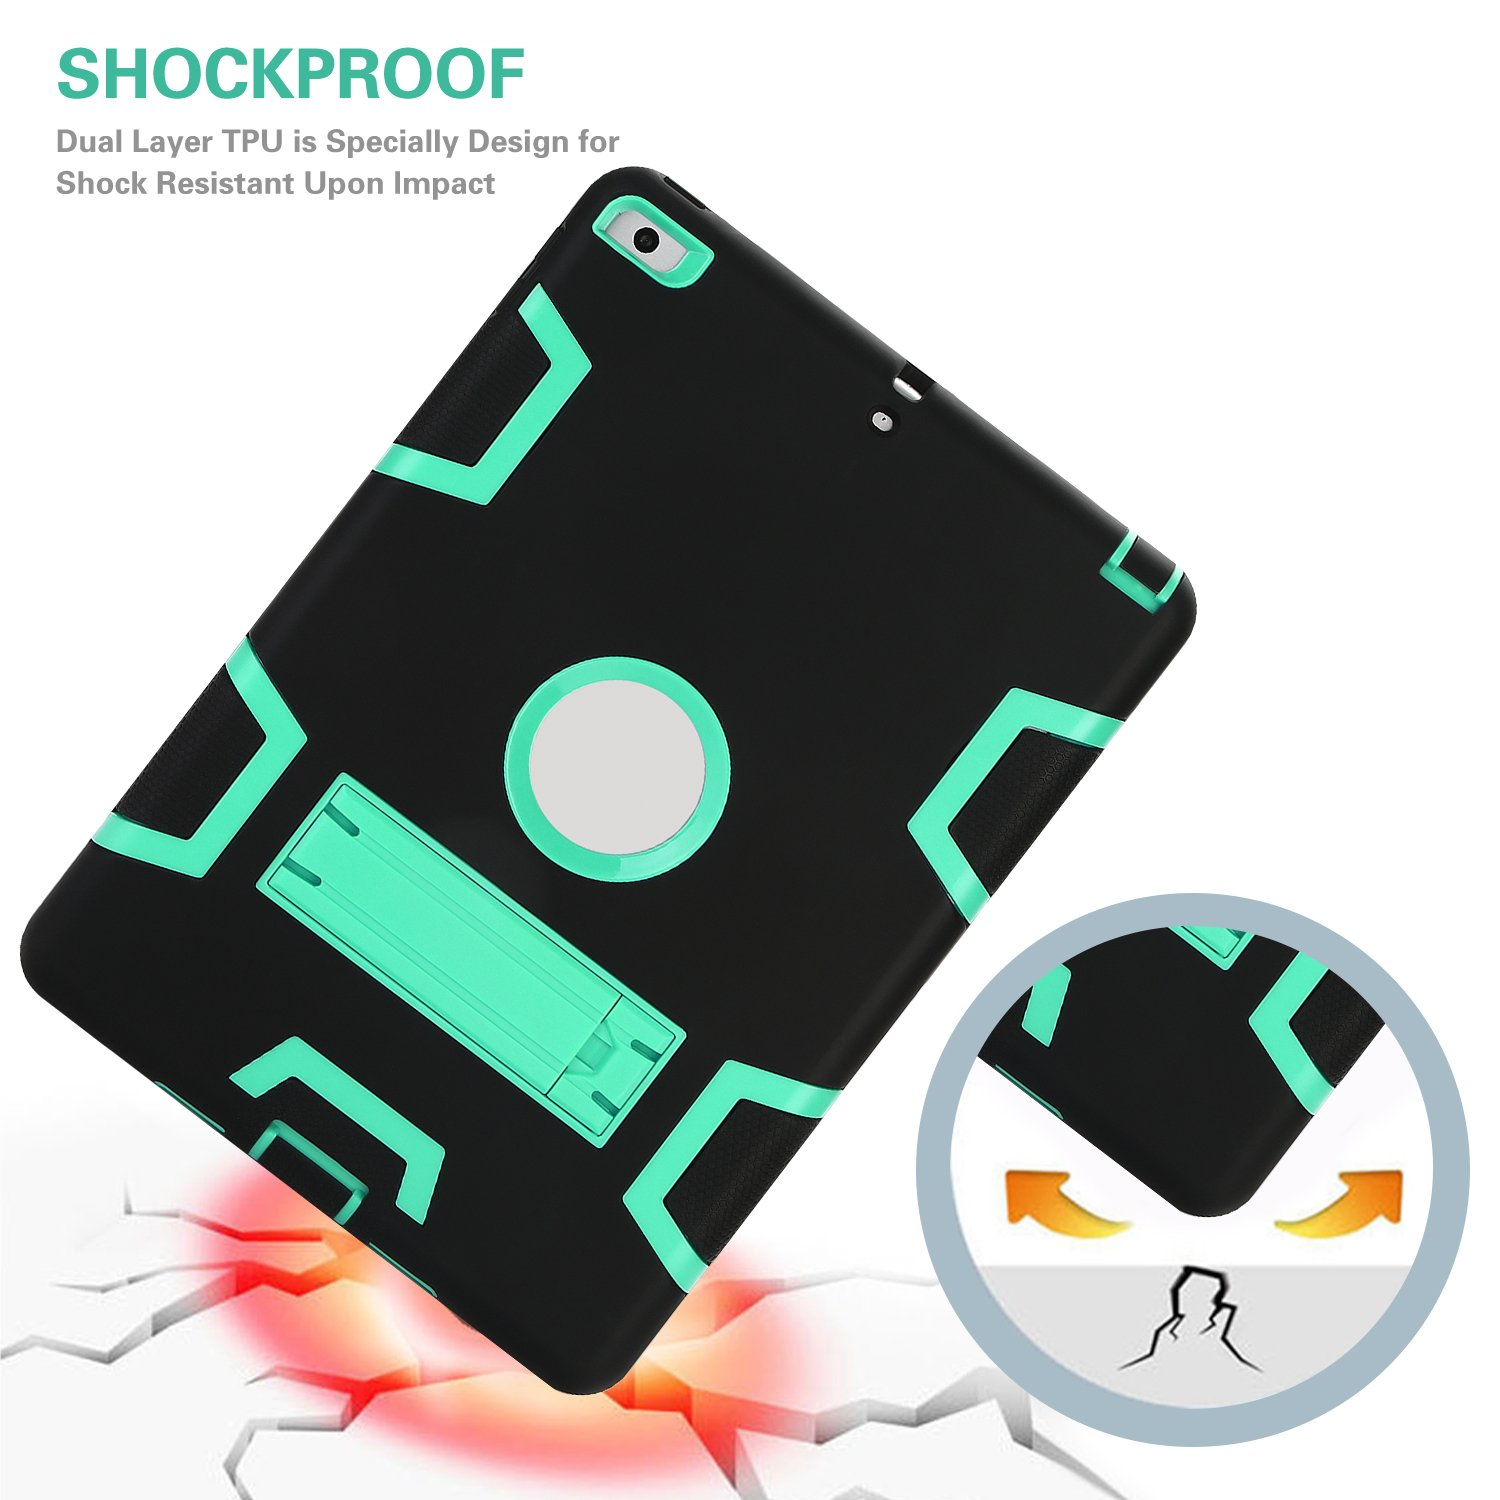 Rugged 3-Layer Heavy Duty Shock Proof iPad 234 Mini Pro Air Case Shell Cover 37